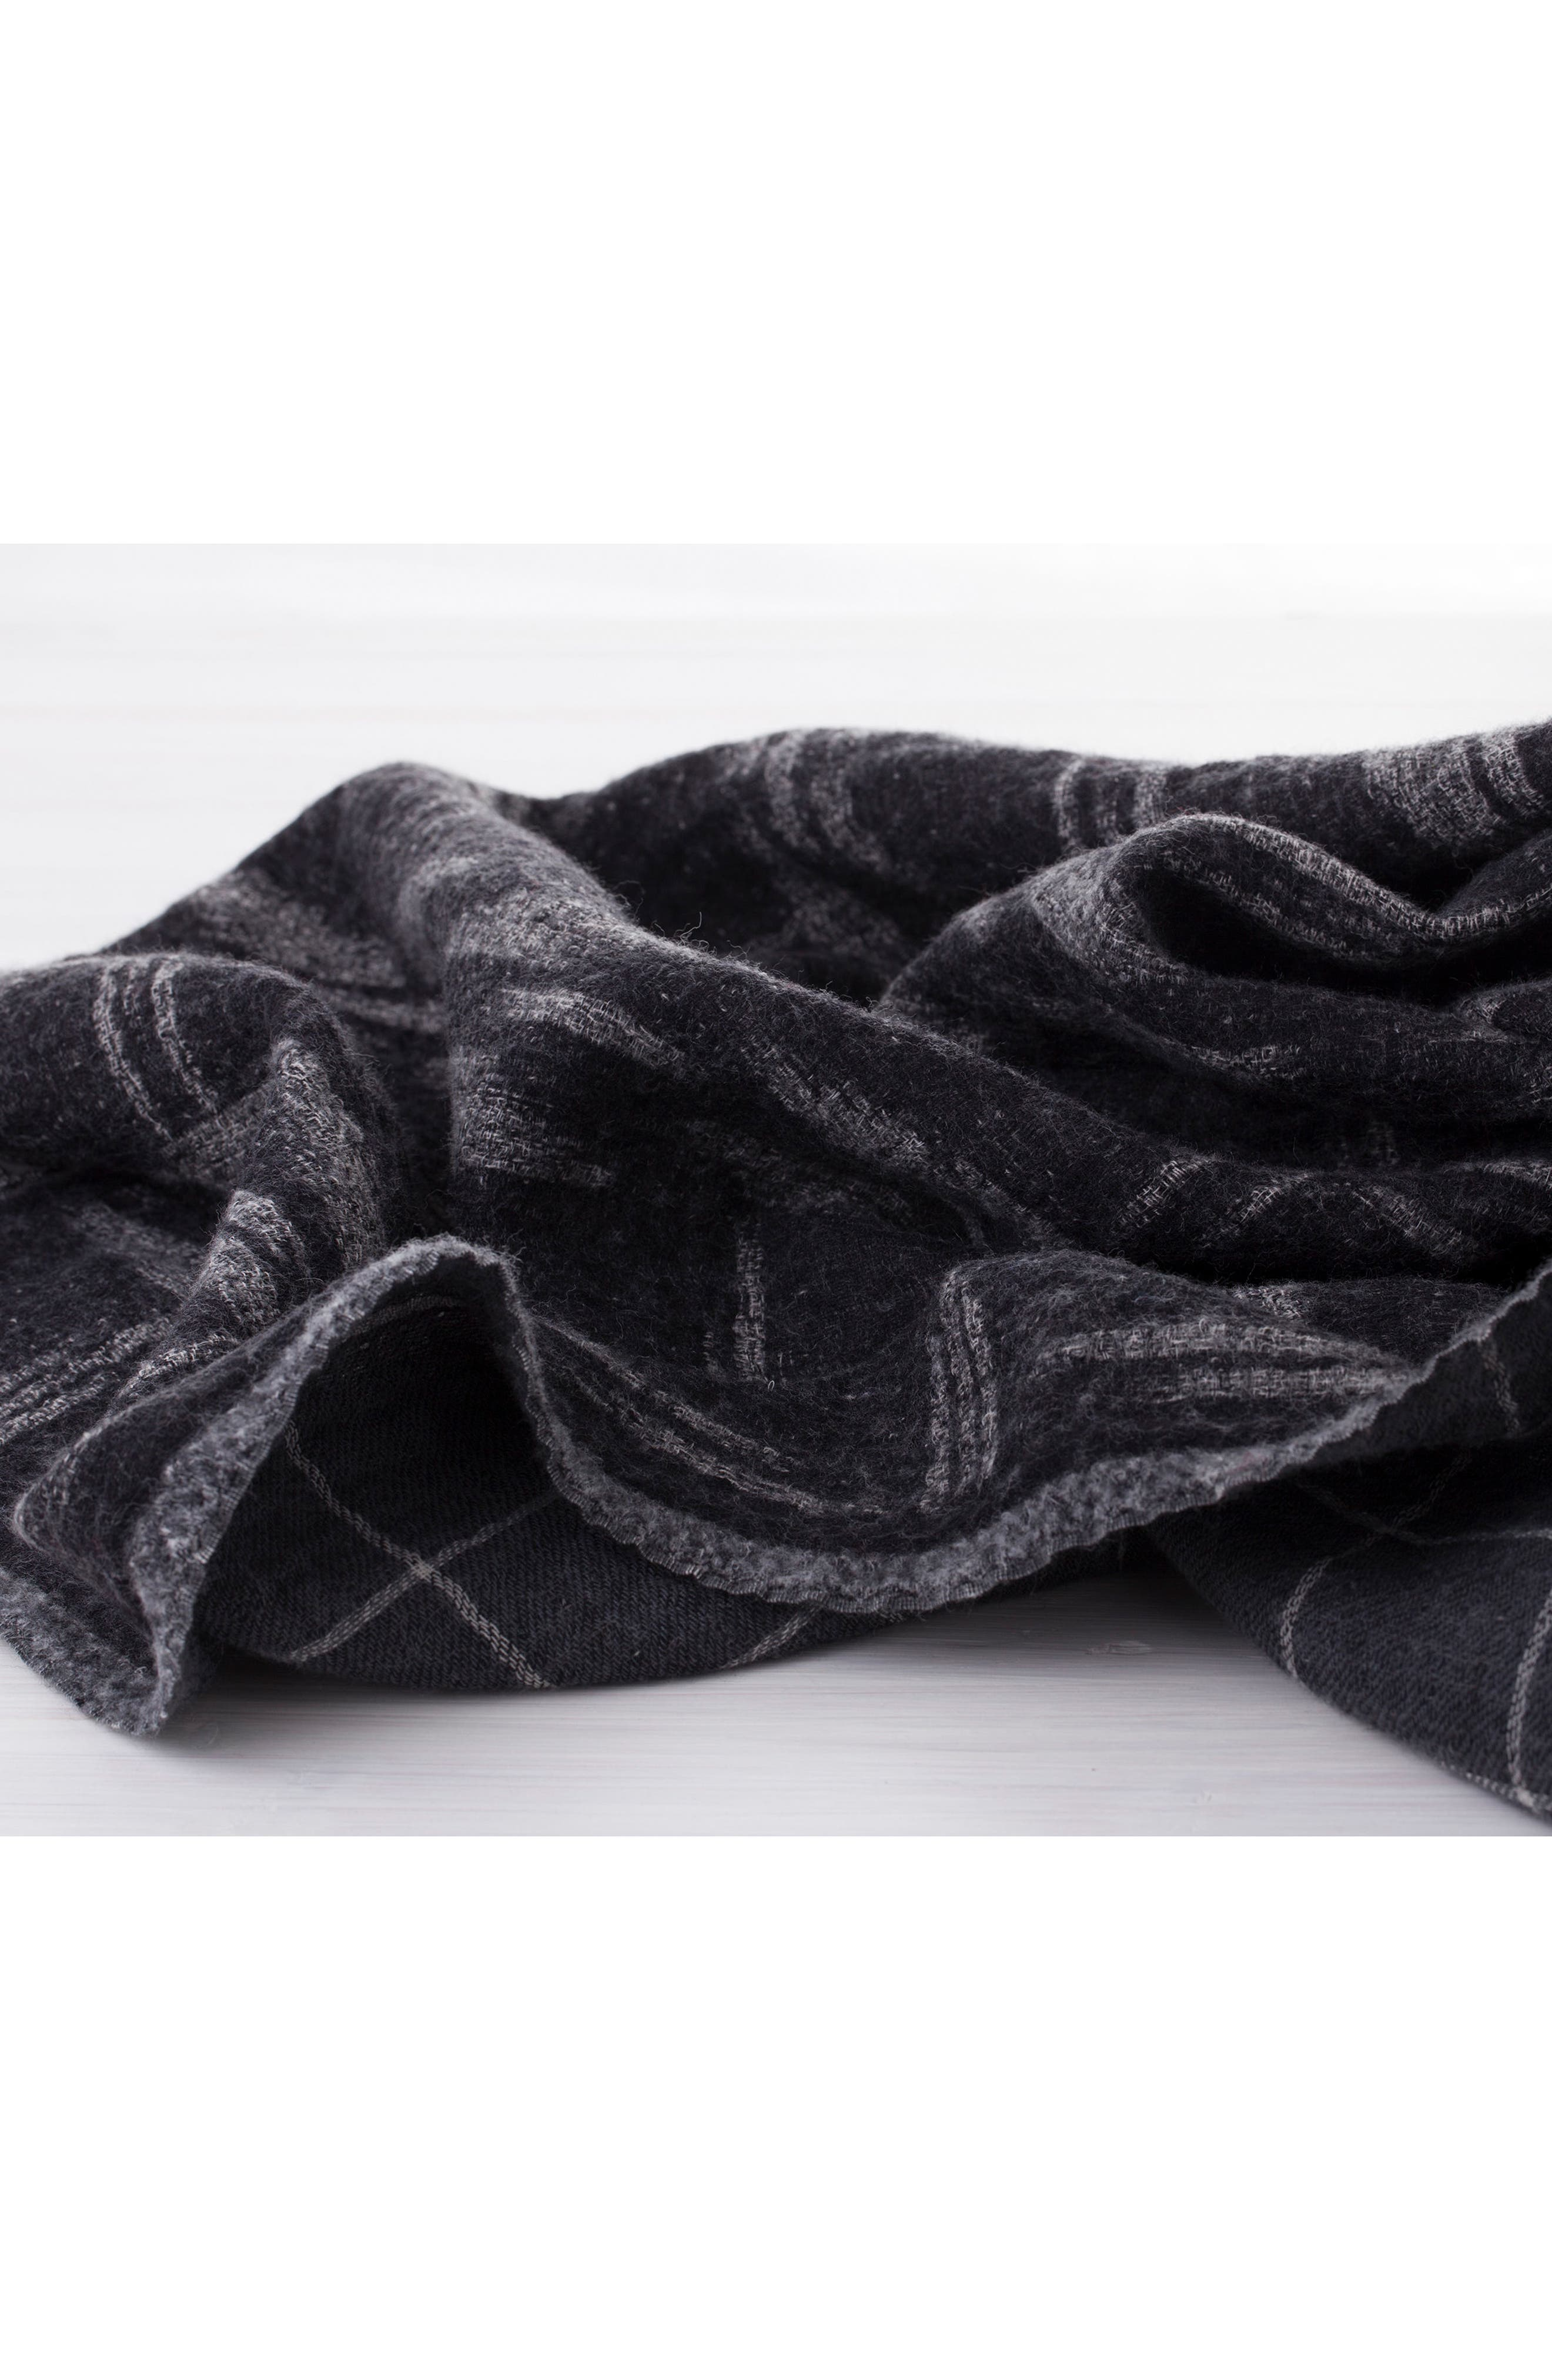 Kasuri Double Face Merino Wool Throw,                             Alternate thumbnail 3, color,                             KASURI